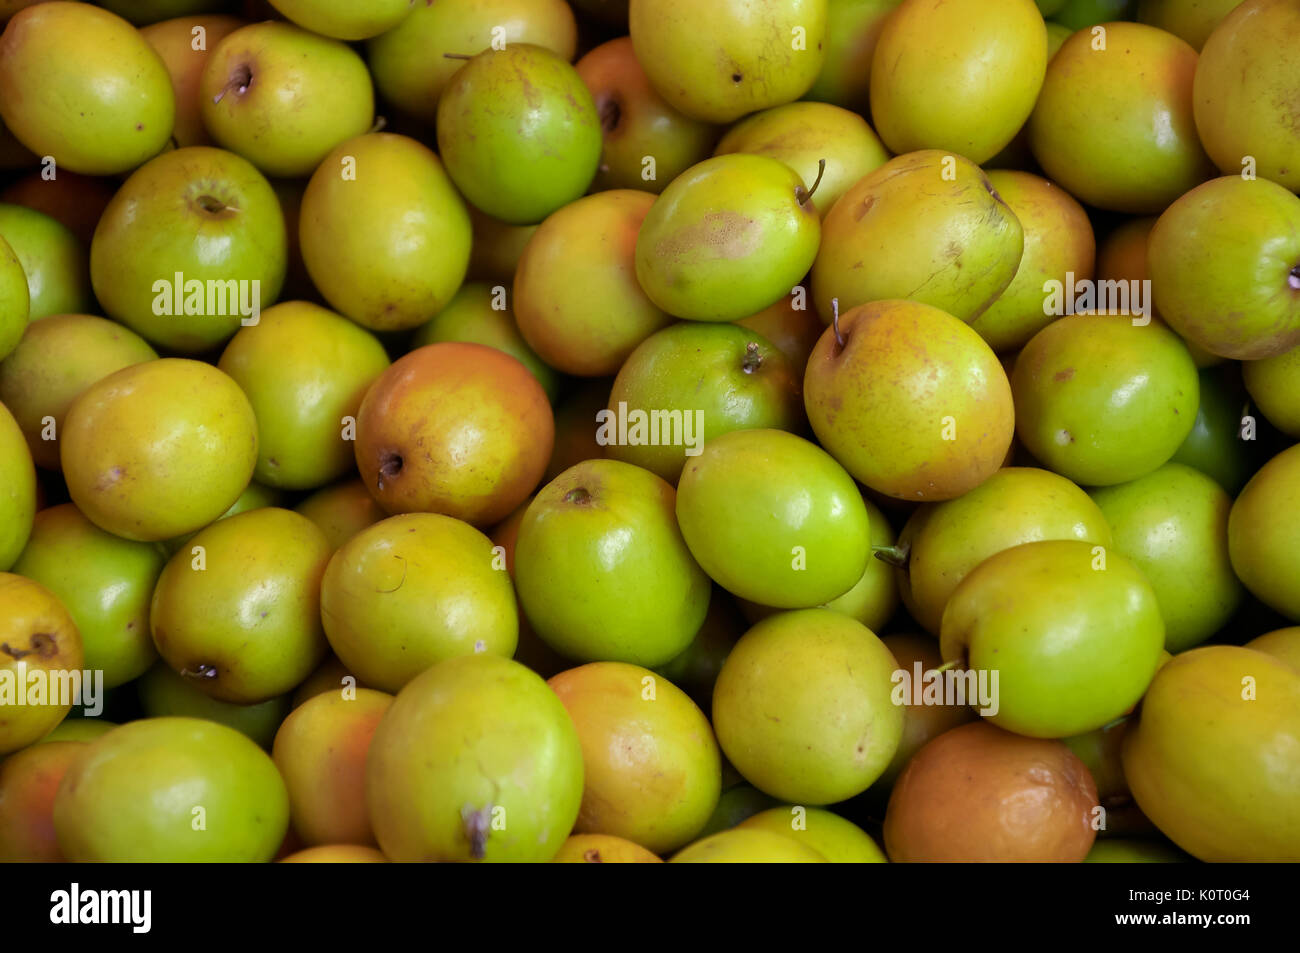 ziziphus tree stock photos amp ziziphus tree stock images